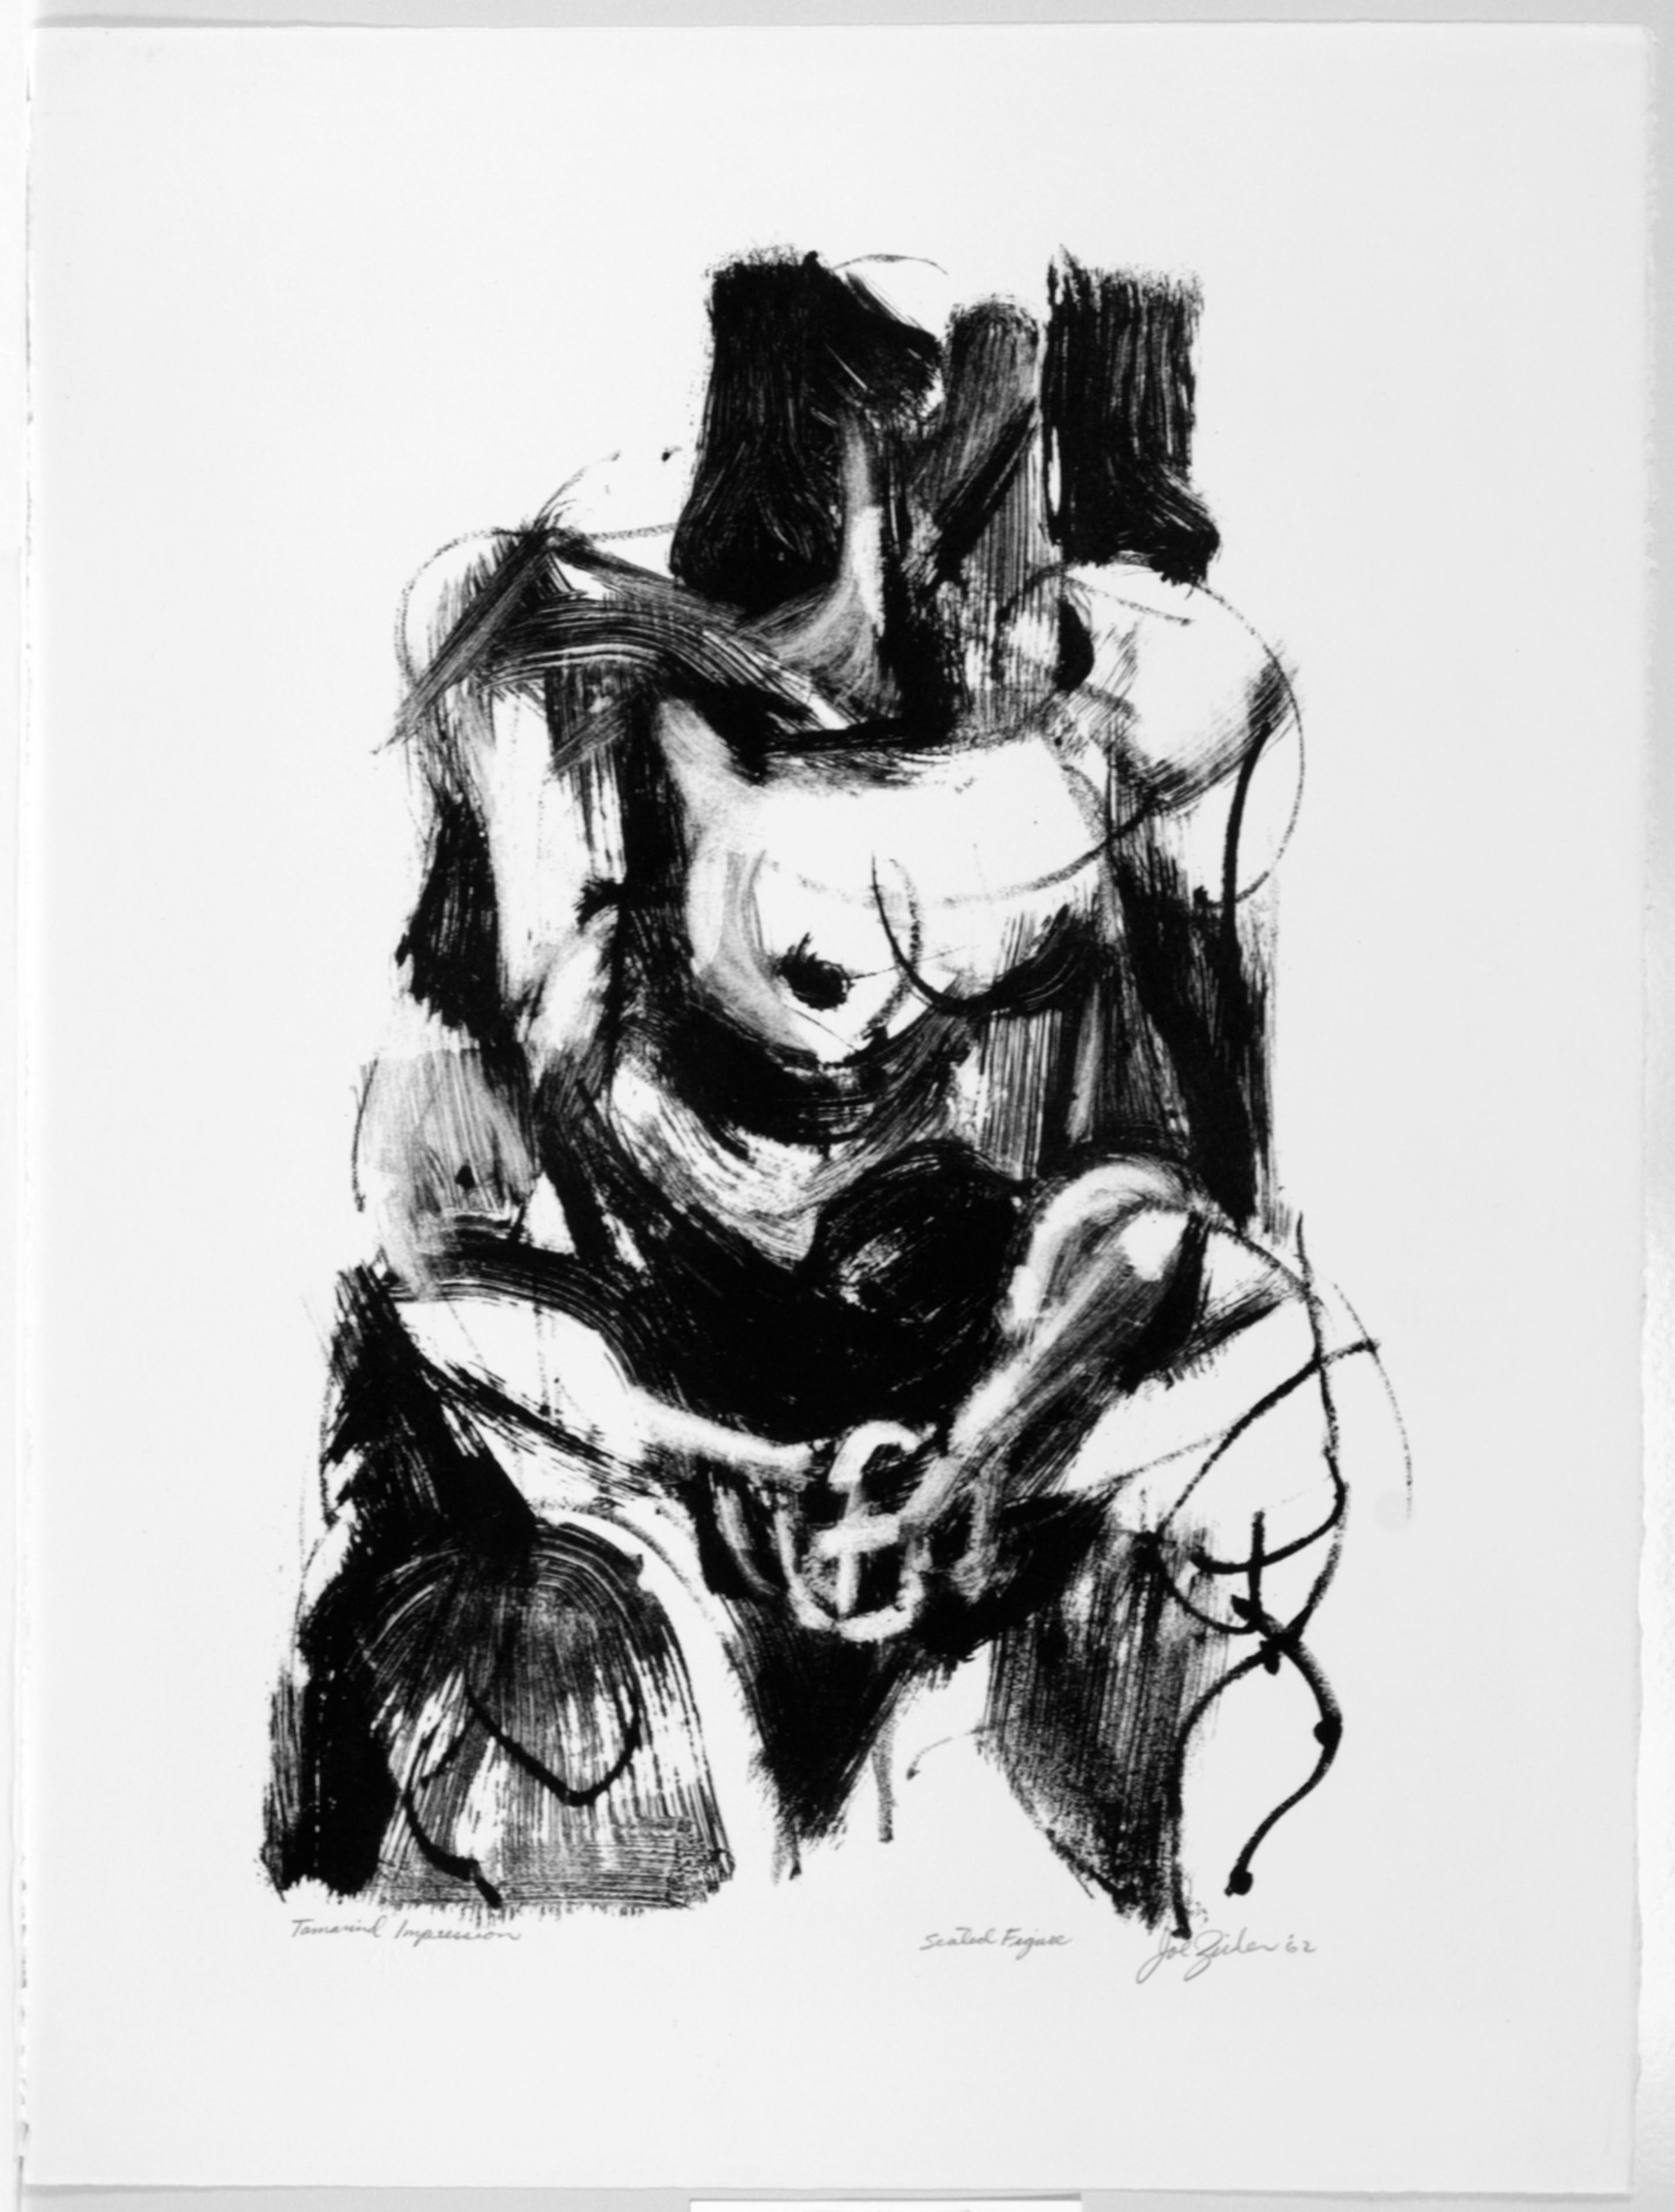 Joe Zirker, Seated Figure, 1962